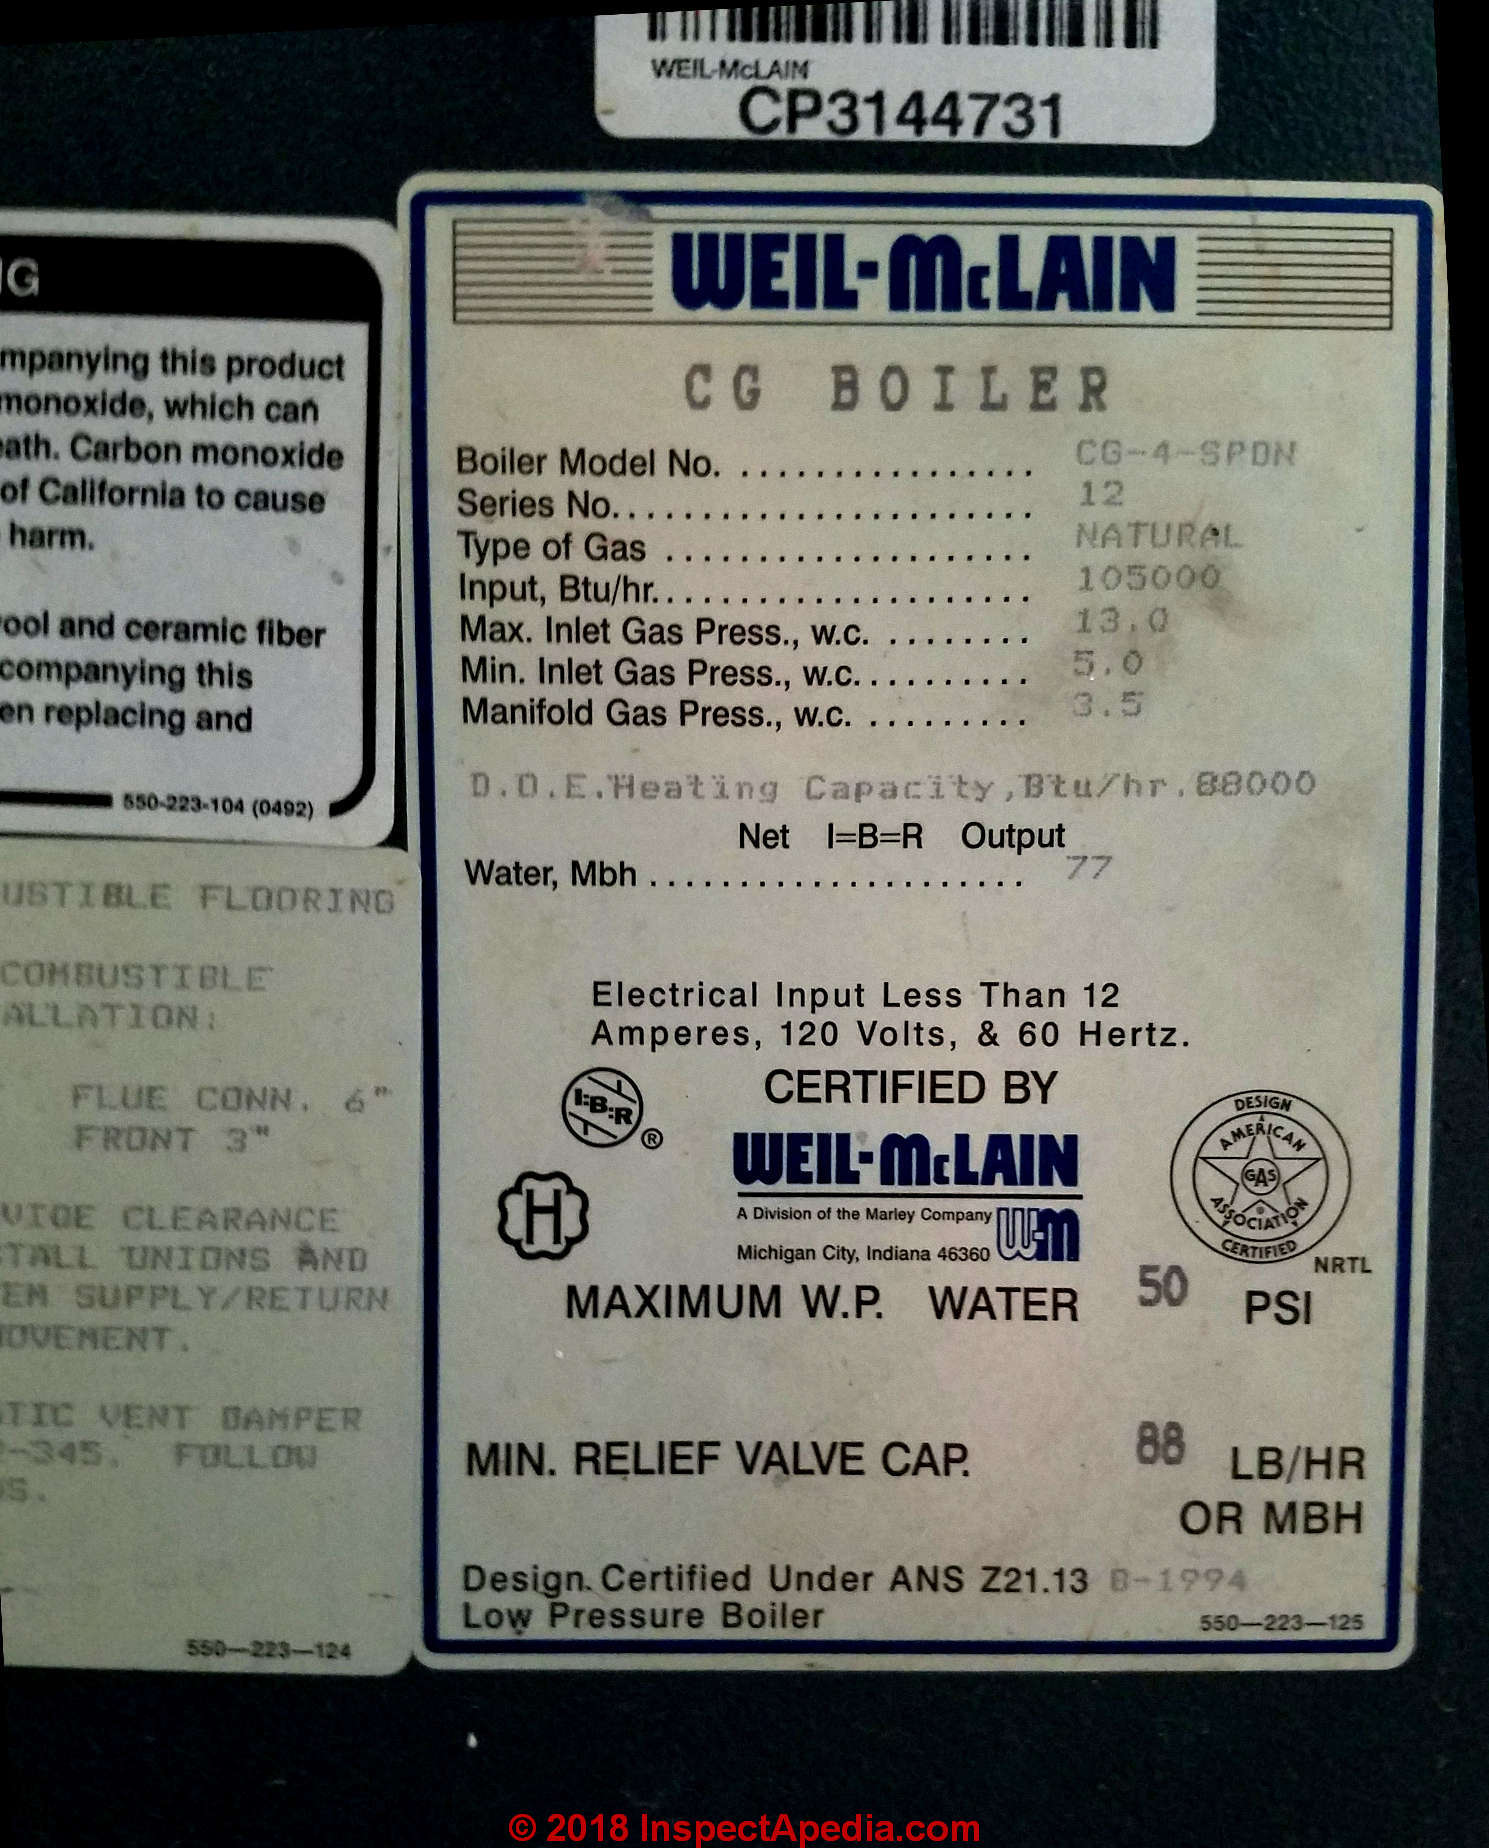 Installation And Service Manuals For Heating Heat Pump Air Taco Zone Valve Wiring Diagram 573 Data Tag From A Weil Mclain Gas Boiler In Two Harbors Mn C Daniel